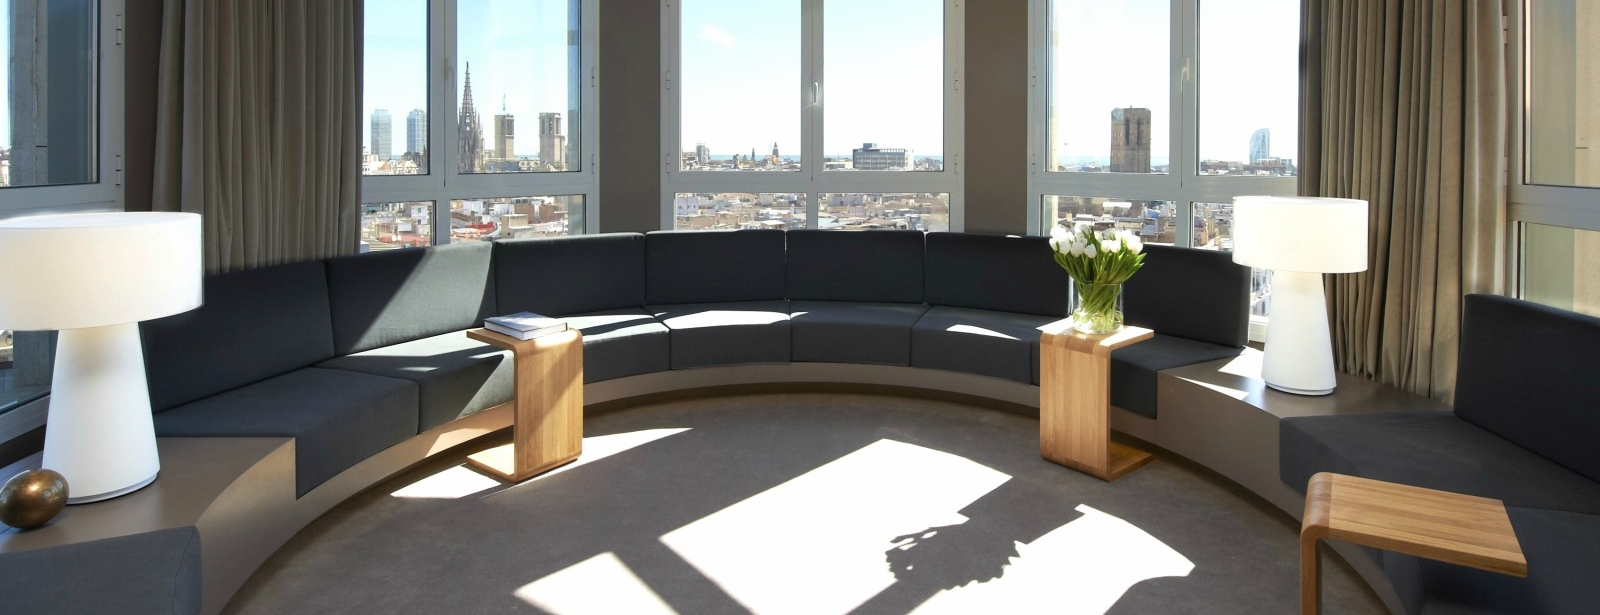 Spacious circular living room perfect for private meetings